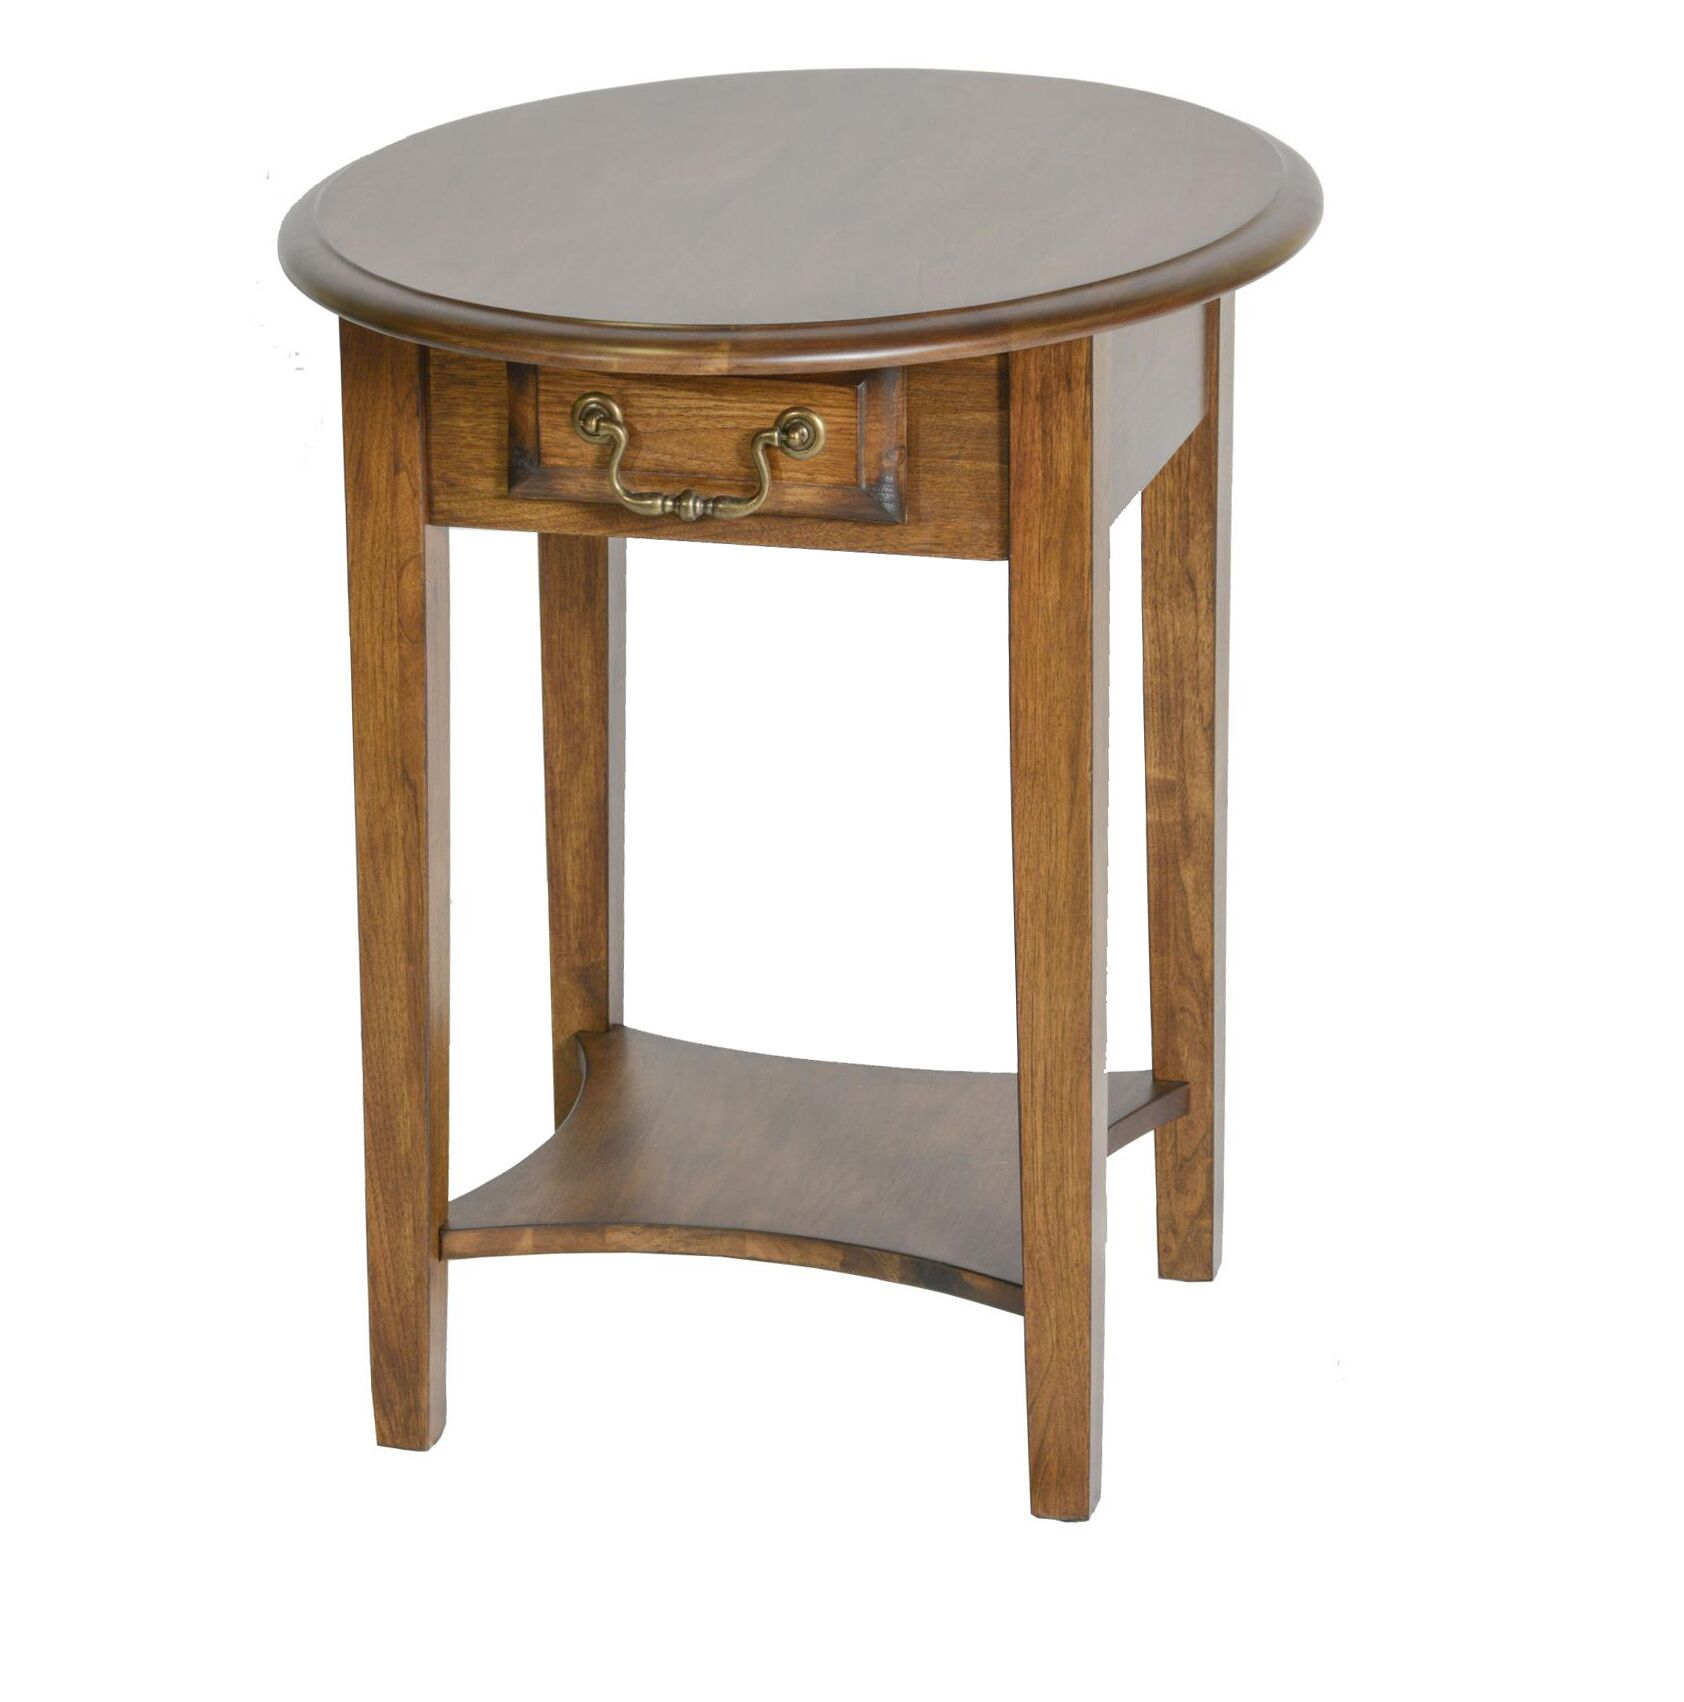 Seger End Table with Drawer